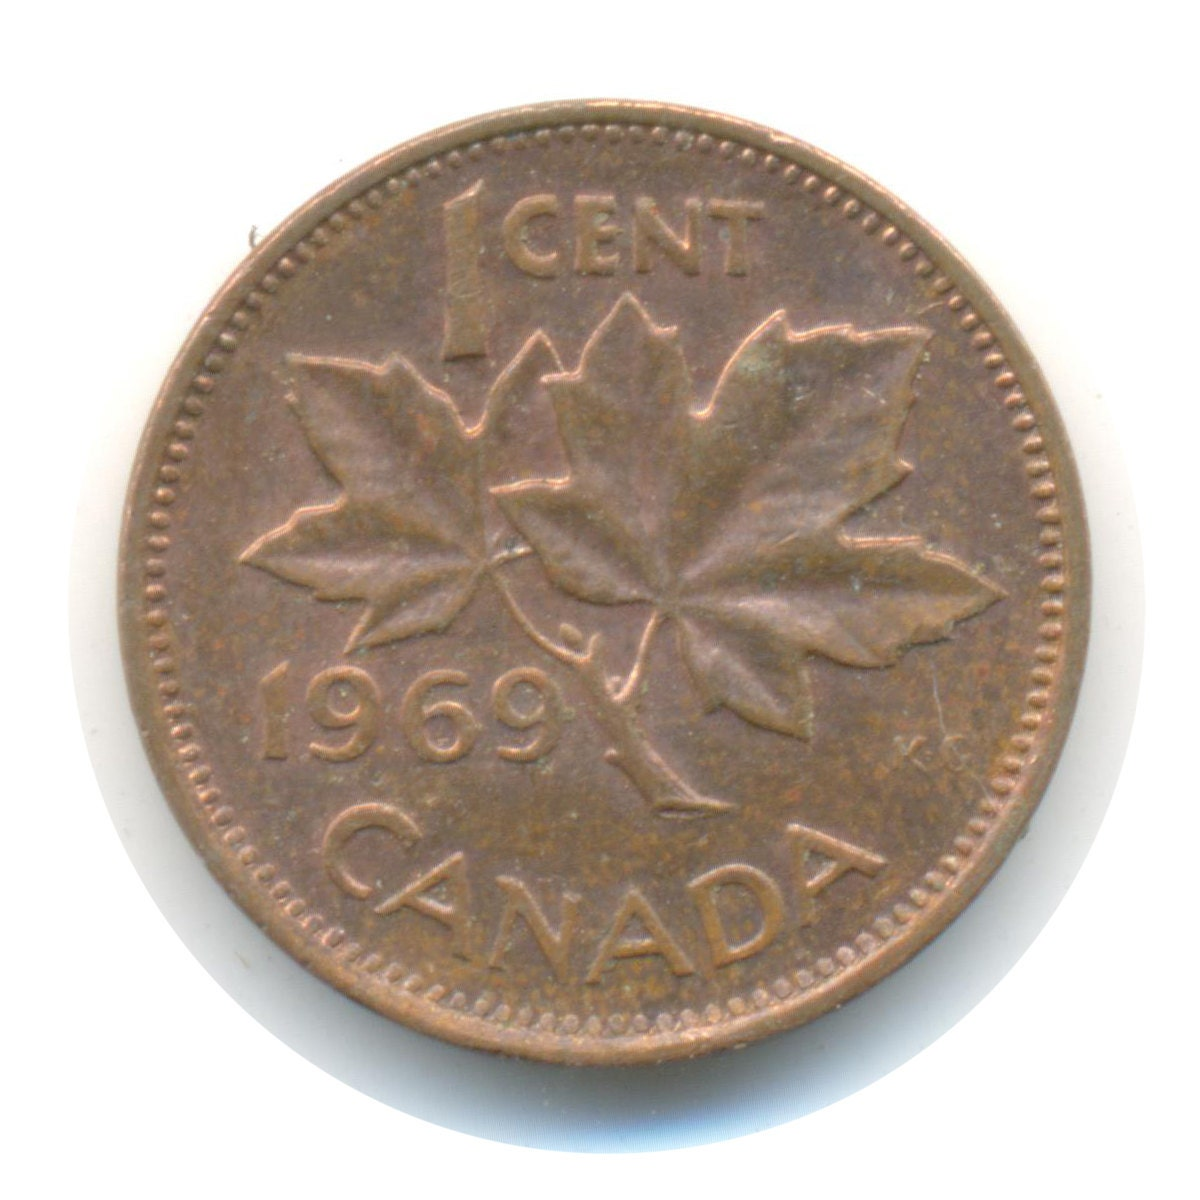 Canada One Cent 1969 Coin Code Jmc1691 By Coinsncards On Etsy